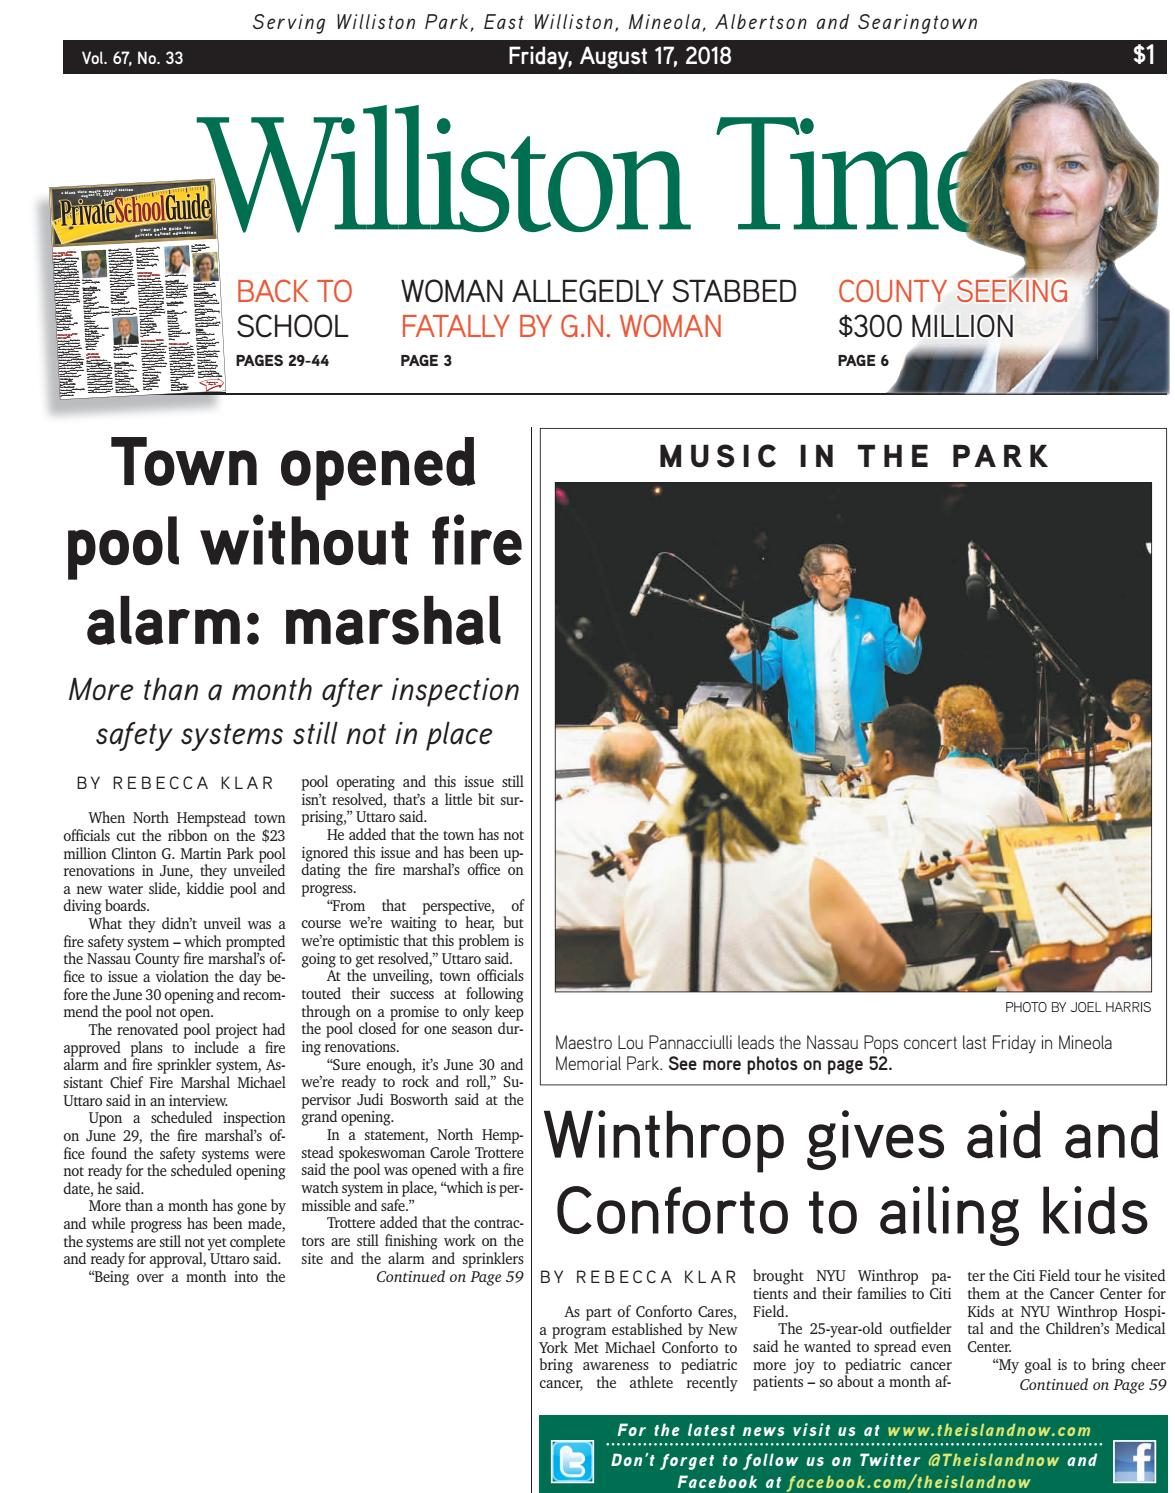 Williston Times 2018_08_17 by The Island Now - issuu